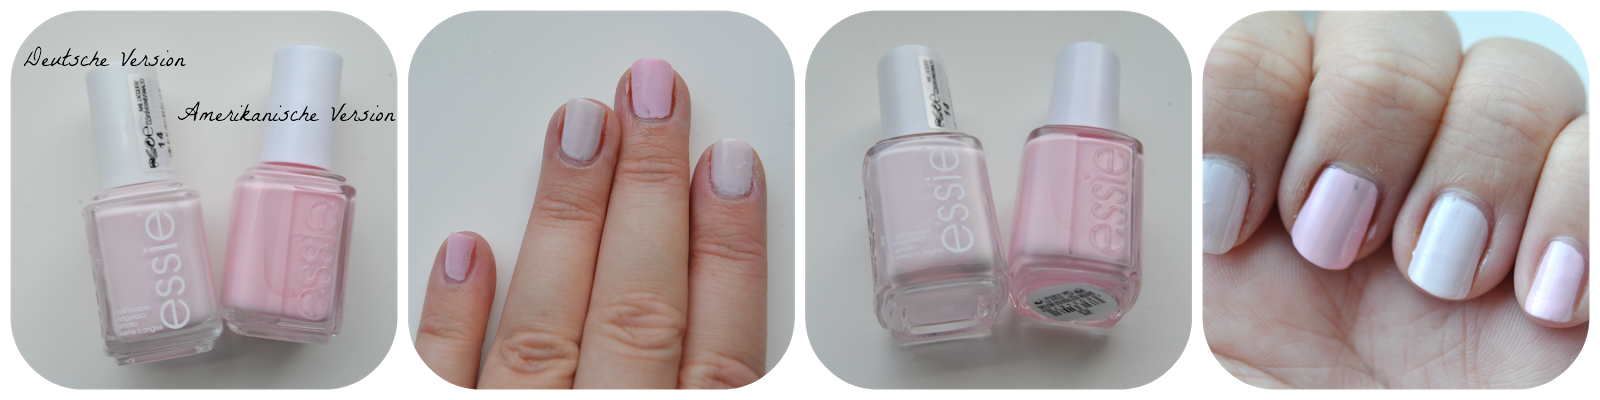 Essie Fiji Swatch US Version vs. Deutsche Version